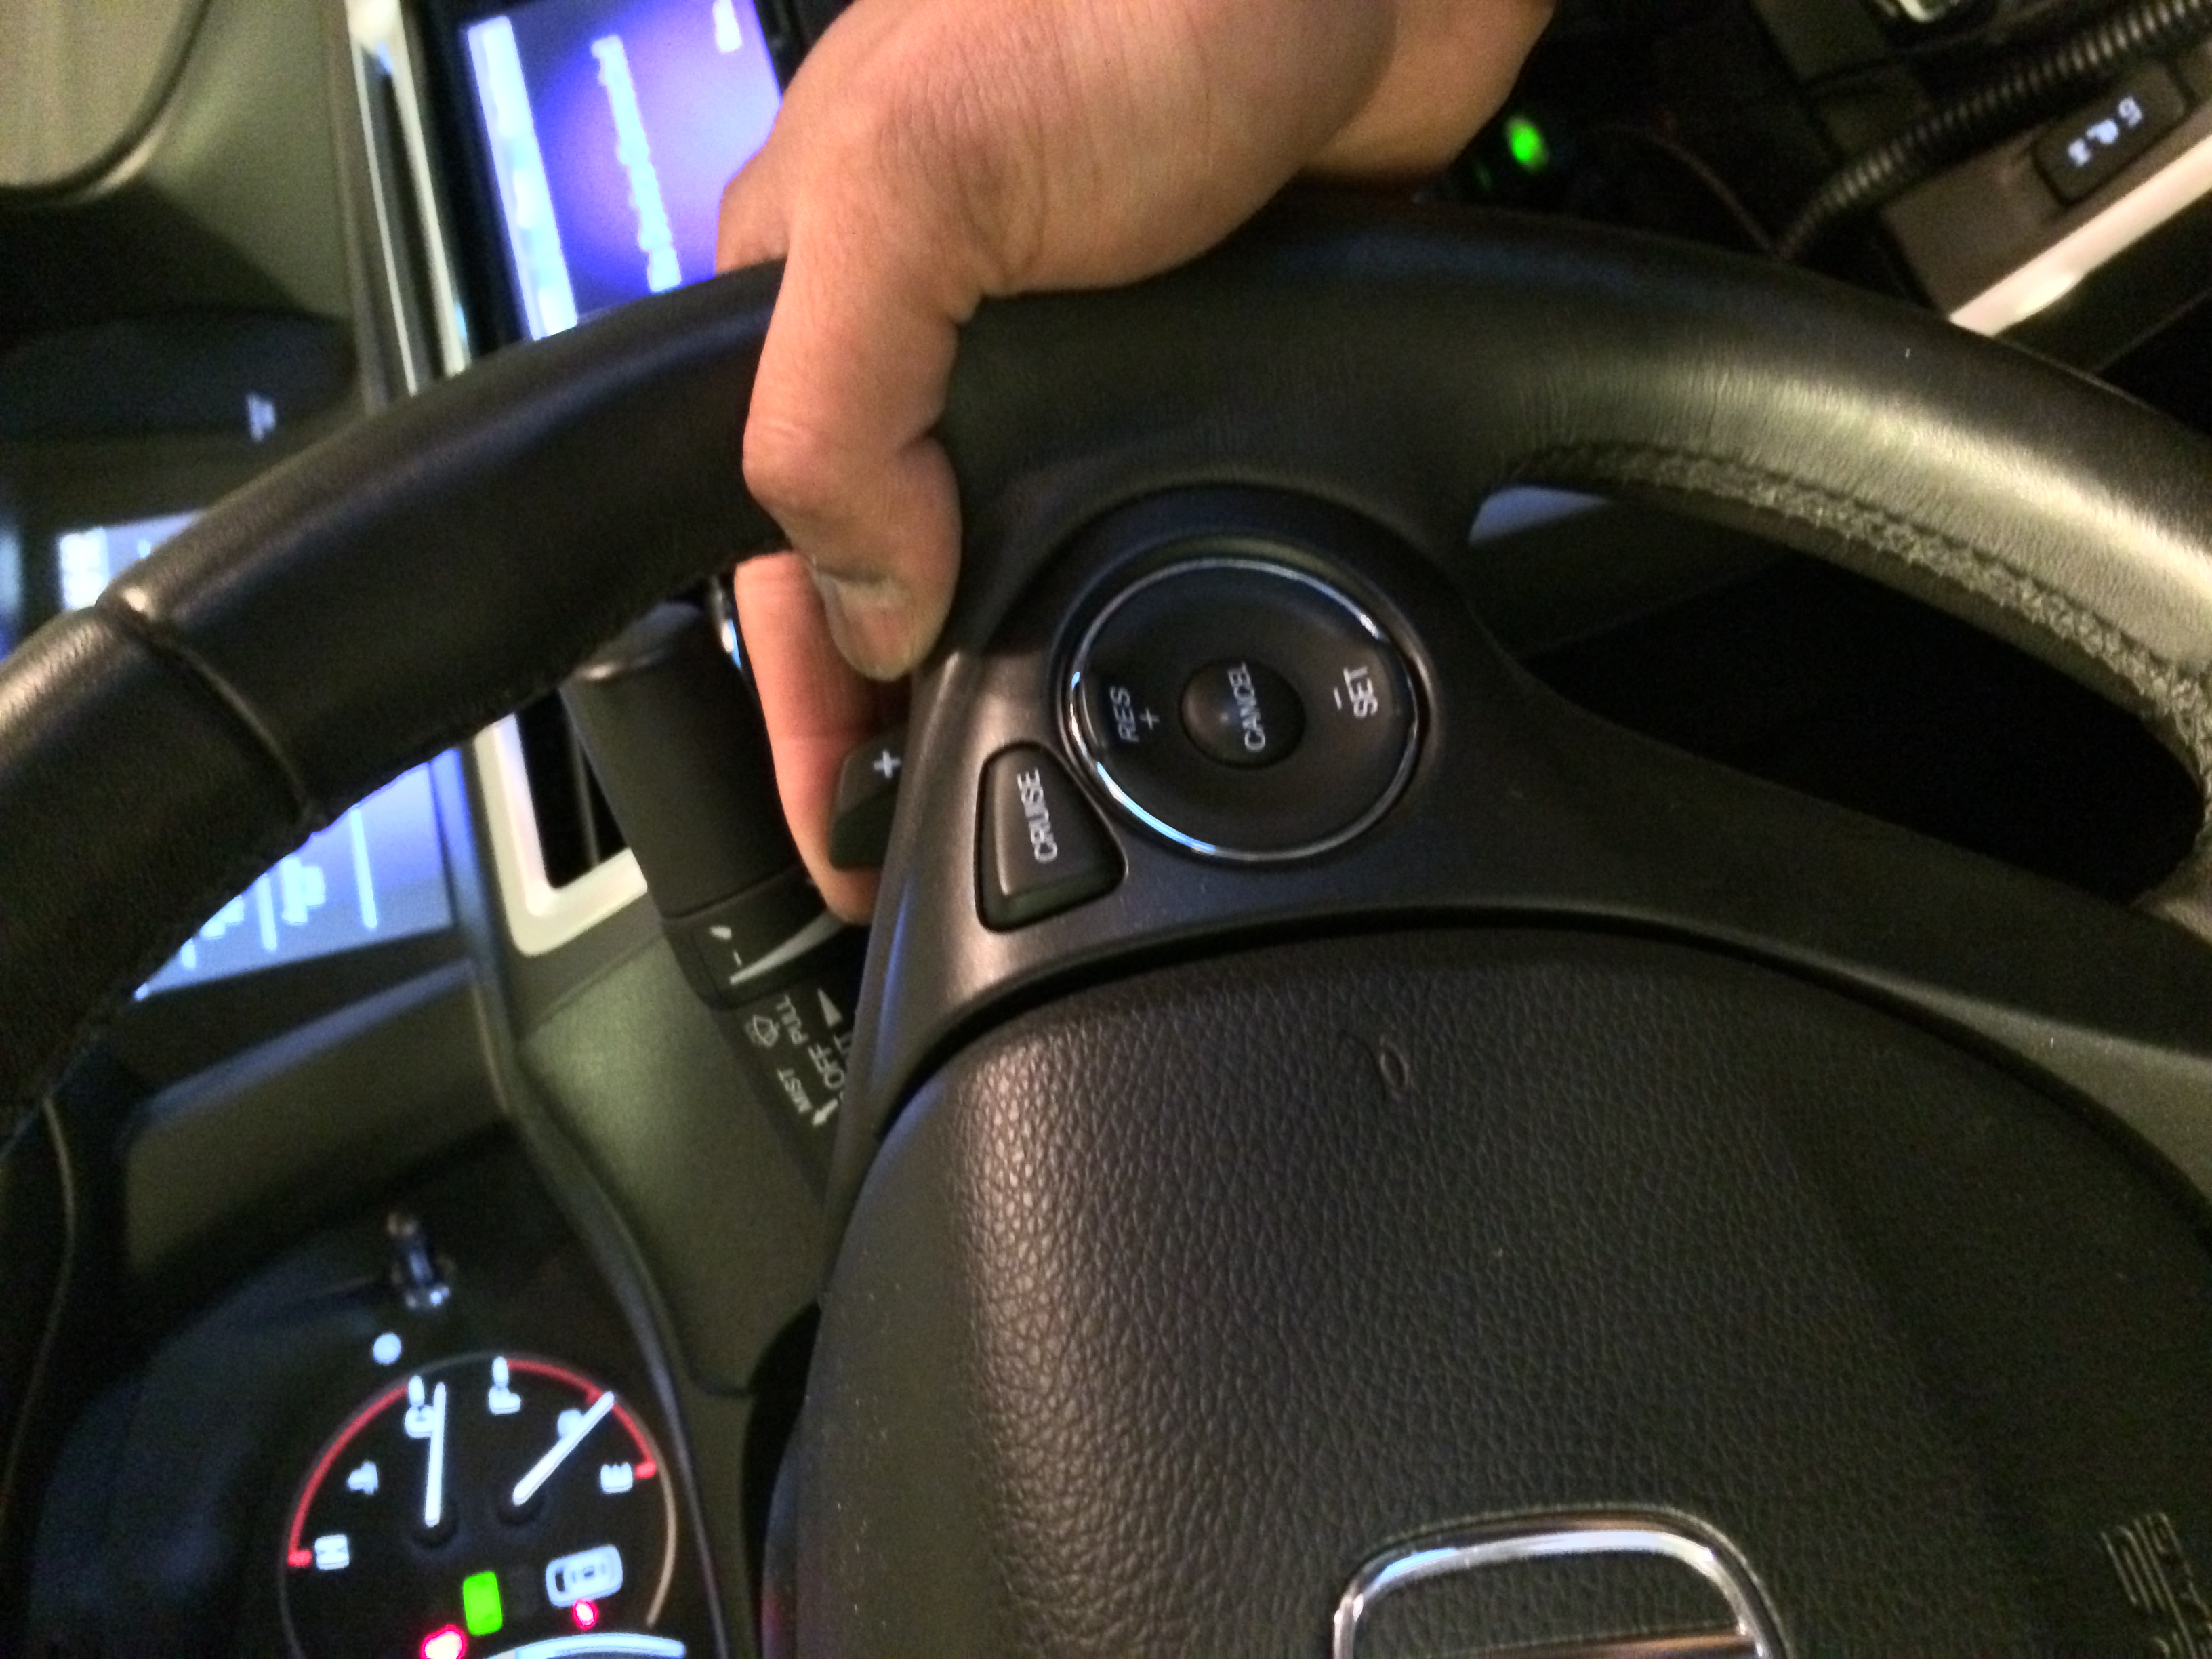 Honda Accord: Using the Paddle Shifters in the D position (D-Paddle Shift Mode)